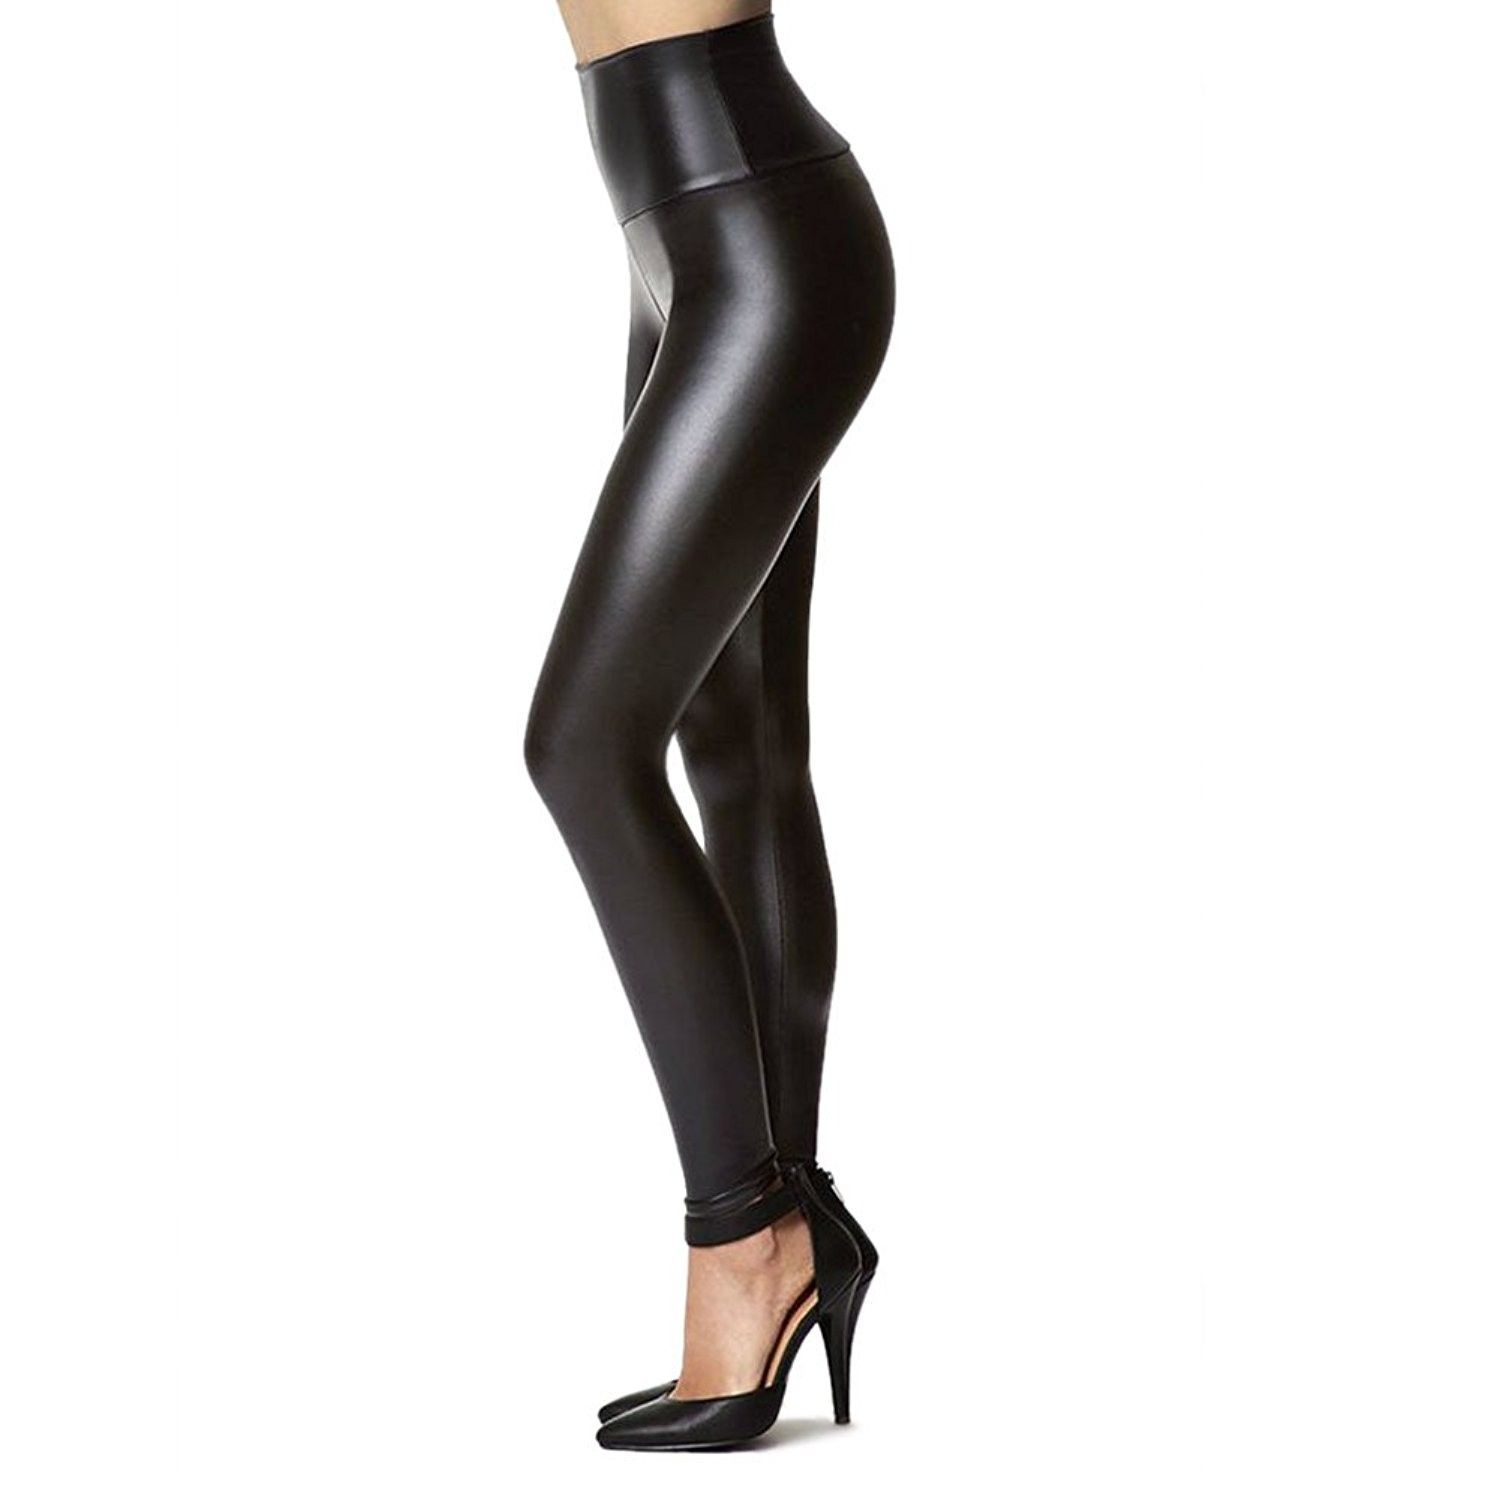 Womens Black Faux Leather Leggings Pants Valentines Day Gifts For